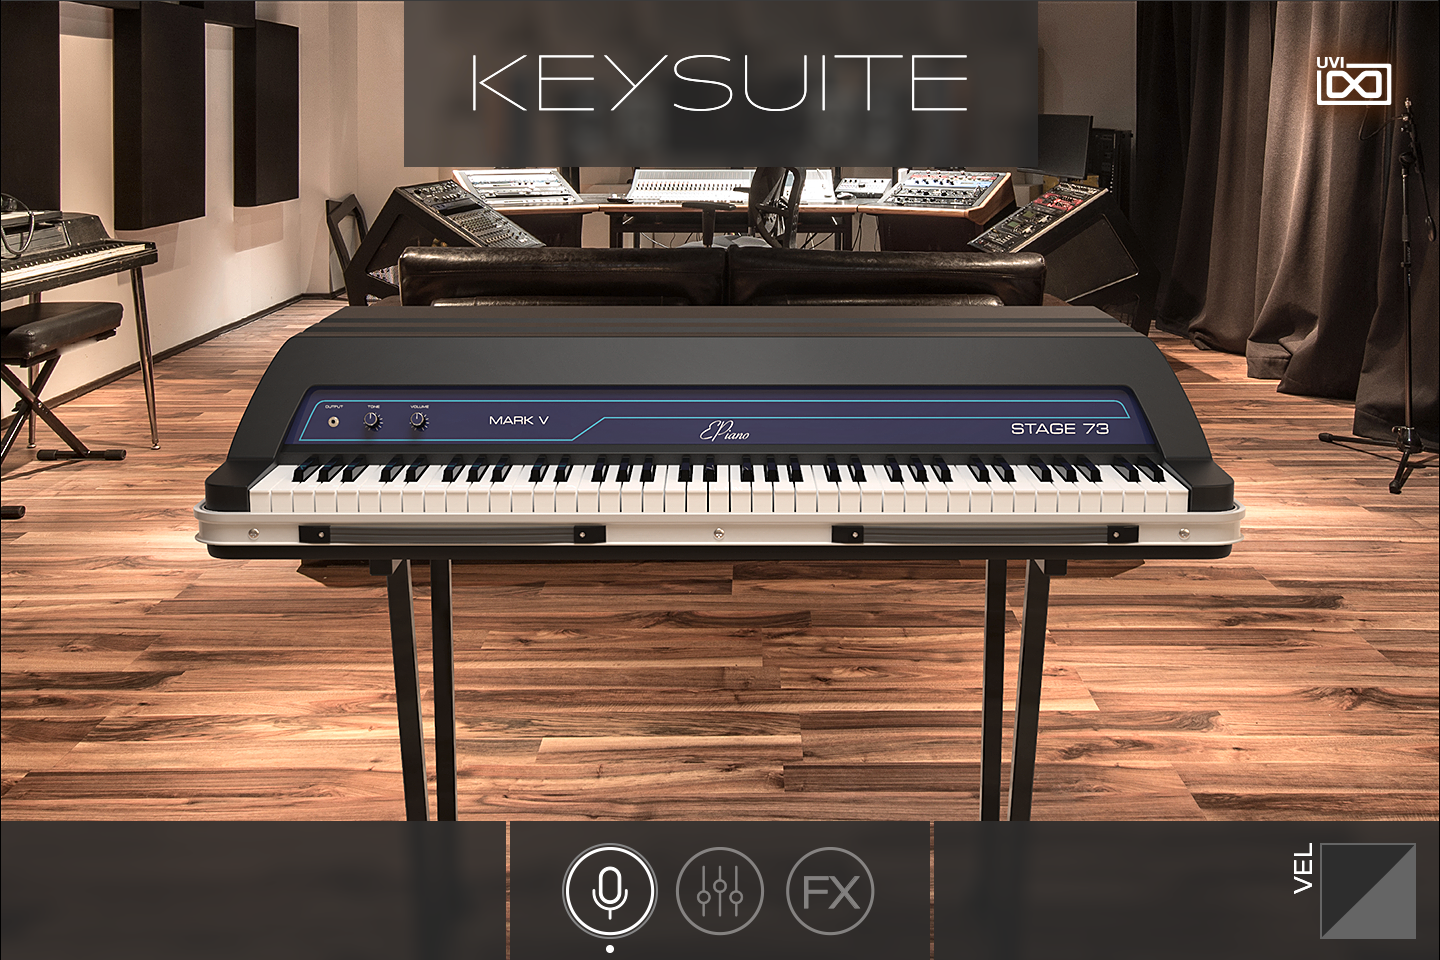 Key Suite Electric | EPiano Mk V